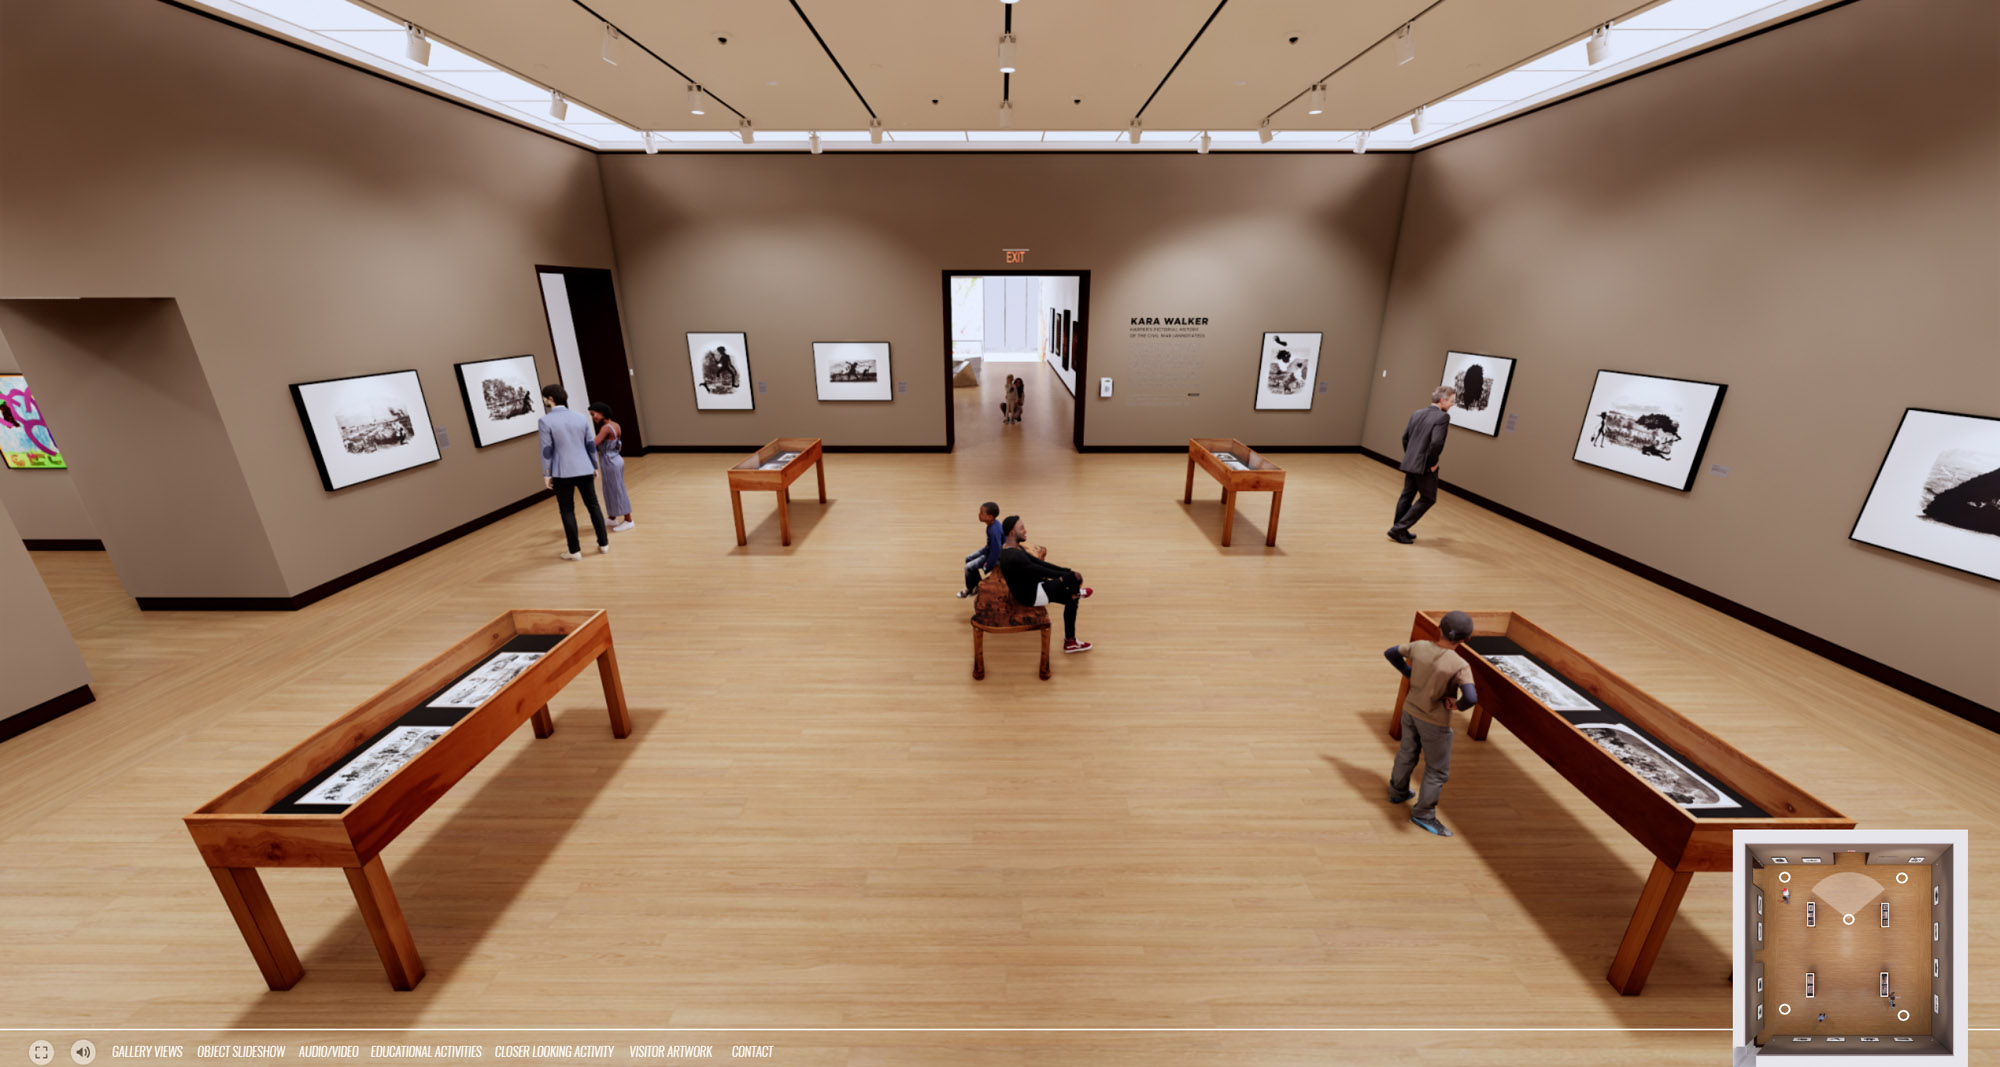 NBMAA asked IKD to develop an interactive VR experience for visitors to experience the Kara Walker Exhibition after the closing the physical exhibition. The tour included the ability to self navigate, diadatics, animated labels, videos content, visitor interactives including a game for children